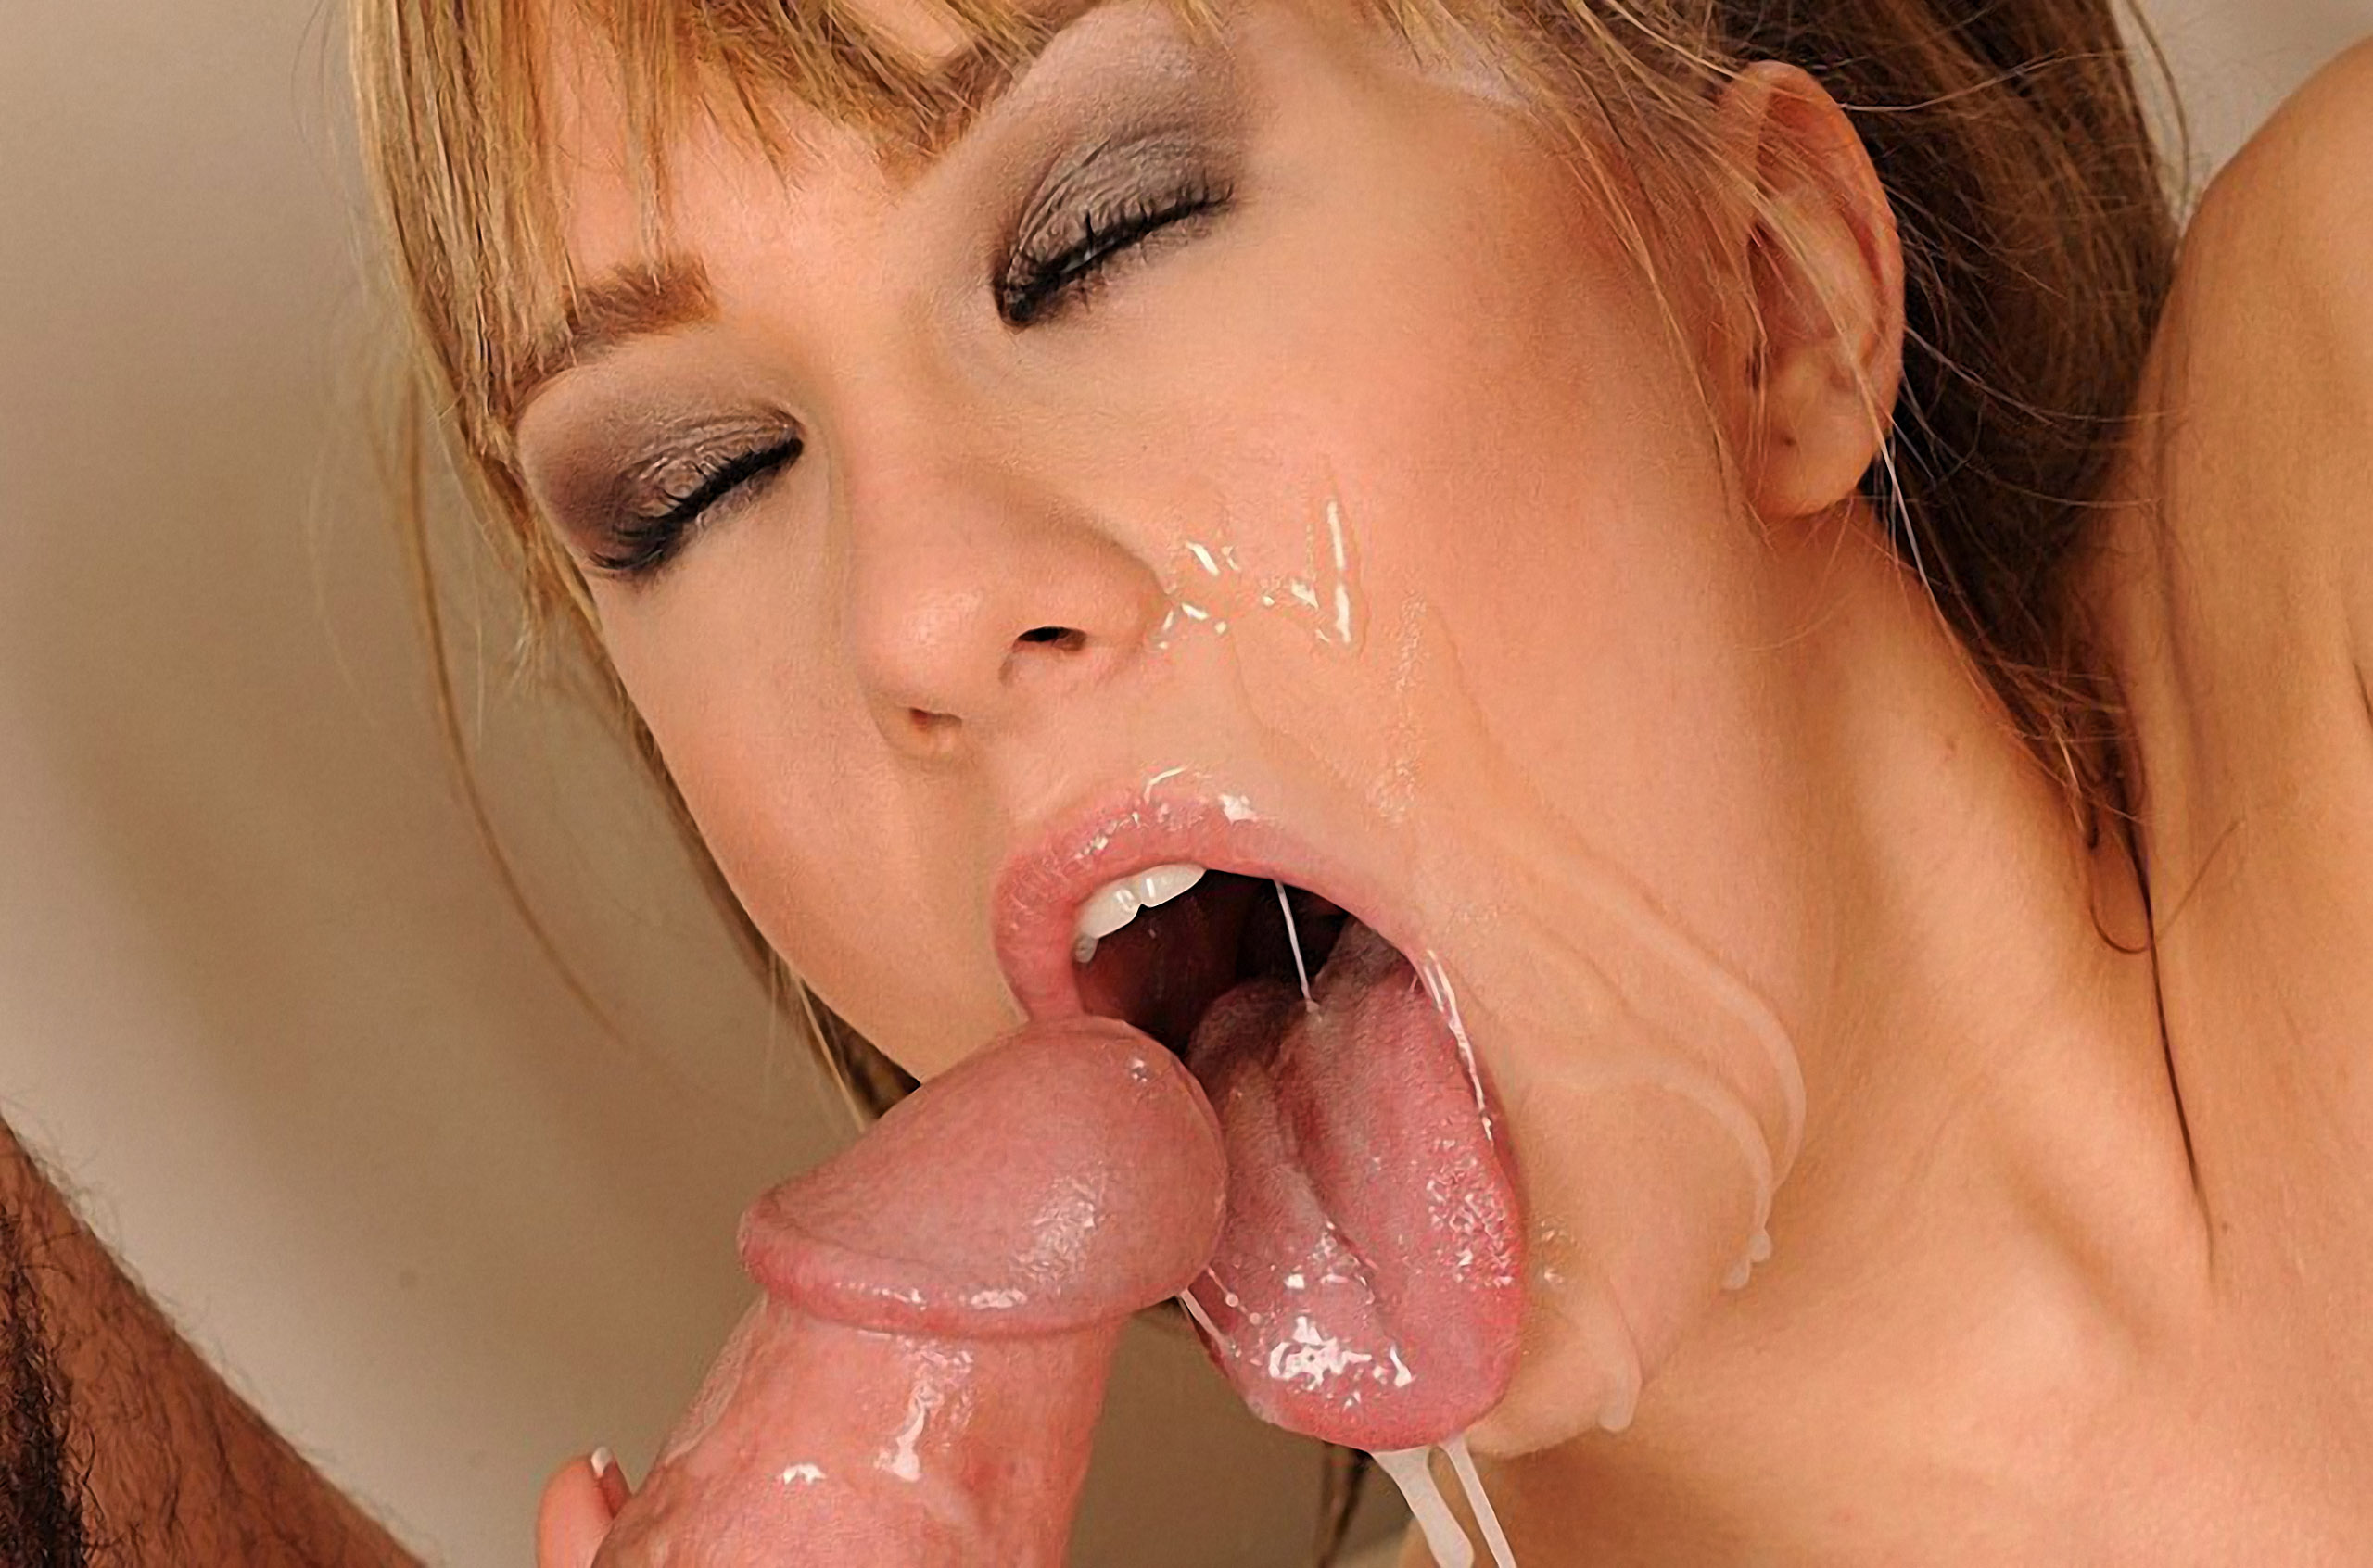 Free download video sexy fuck face cum — photo 15